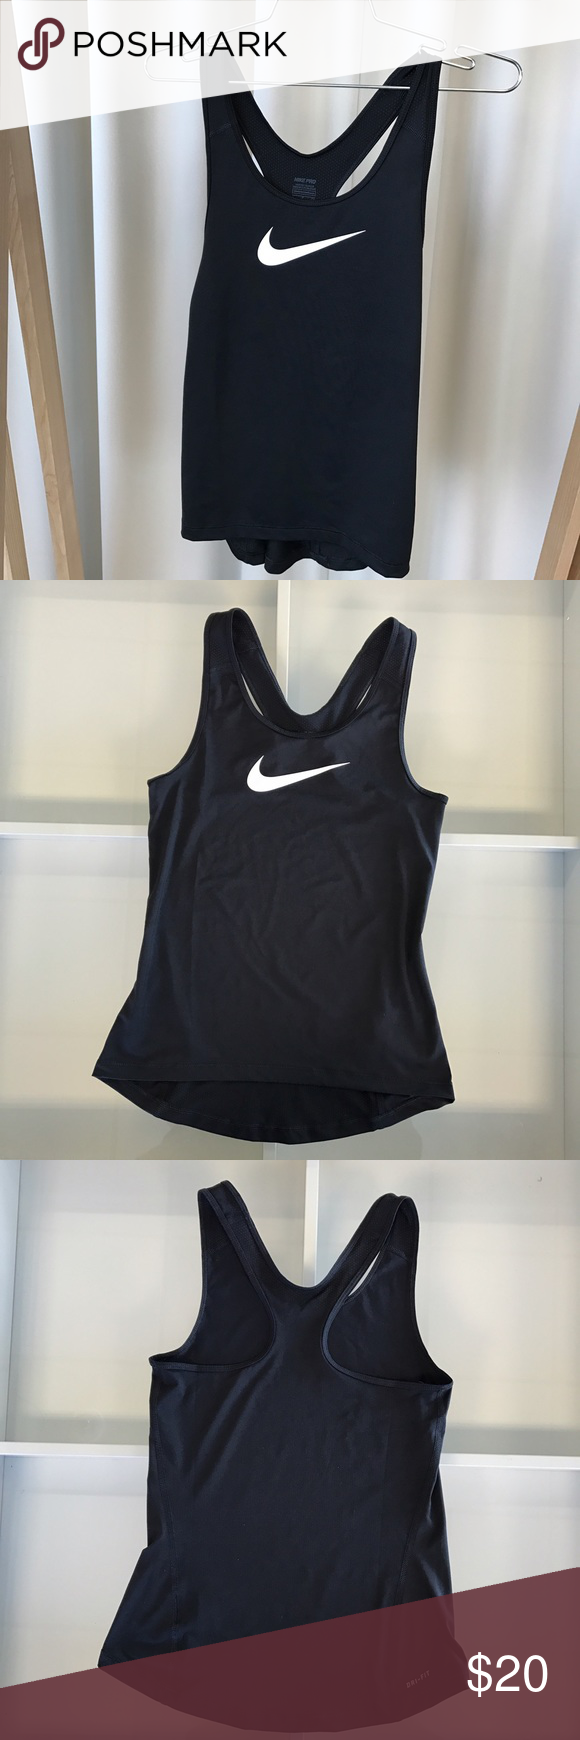 Nike Dri-Fit Tank Top This is a comfortable and form fitting black Nike training tank top, with Dri-fit technology. Worn a couple of times and in great condition.       Feel free to ask questions! Nike Tops Tank Tops